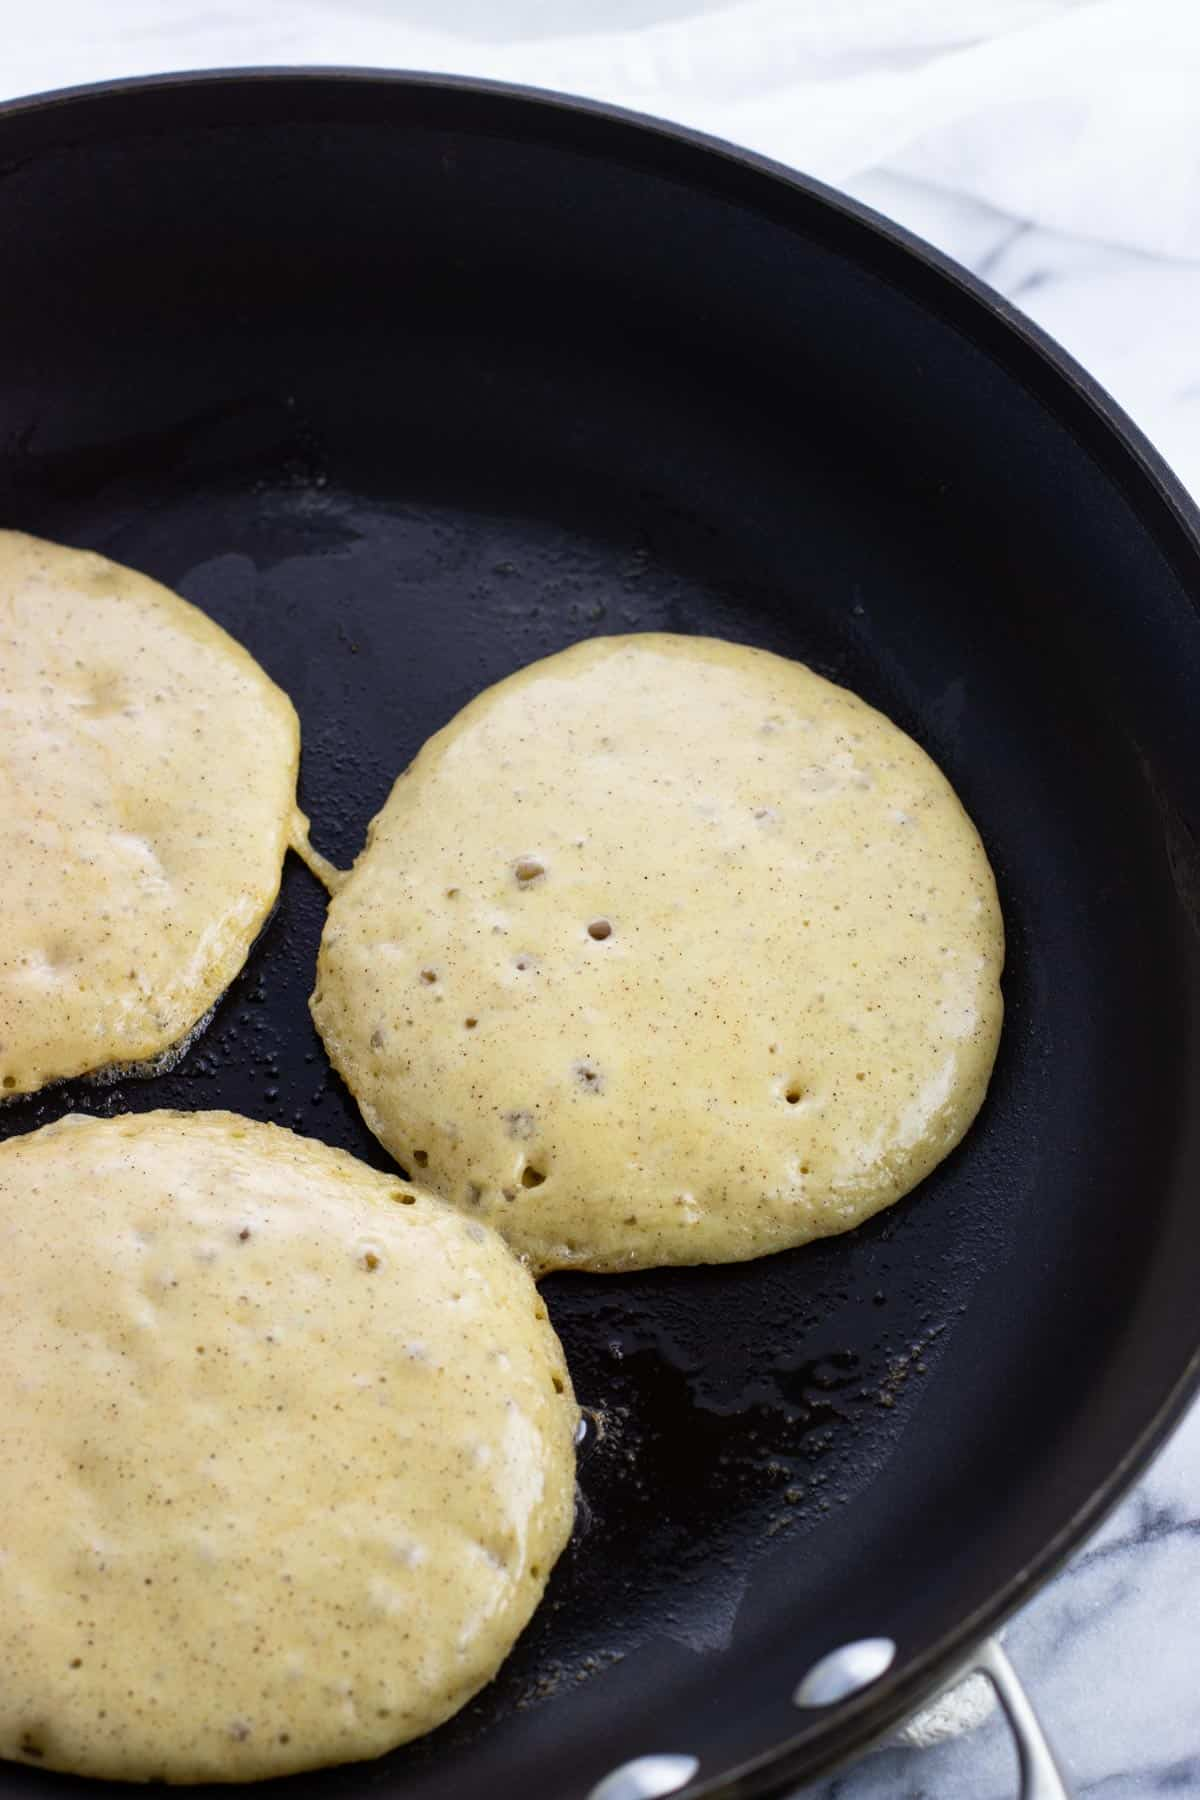 Batter for three pancakes poured onto a hot pan.